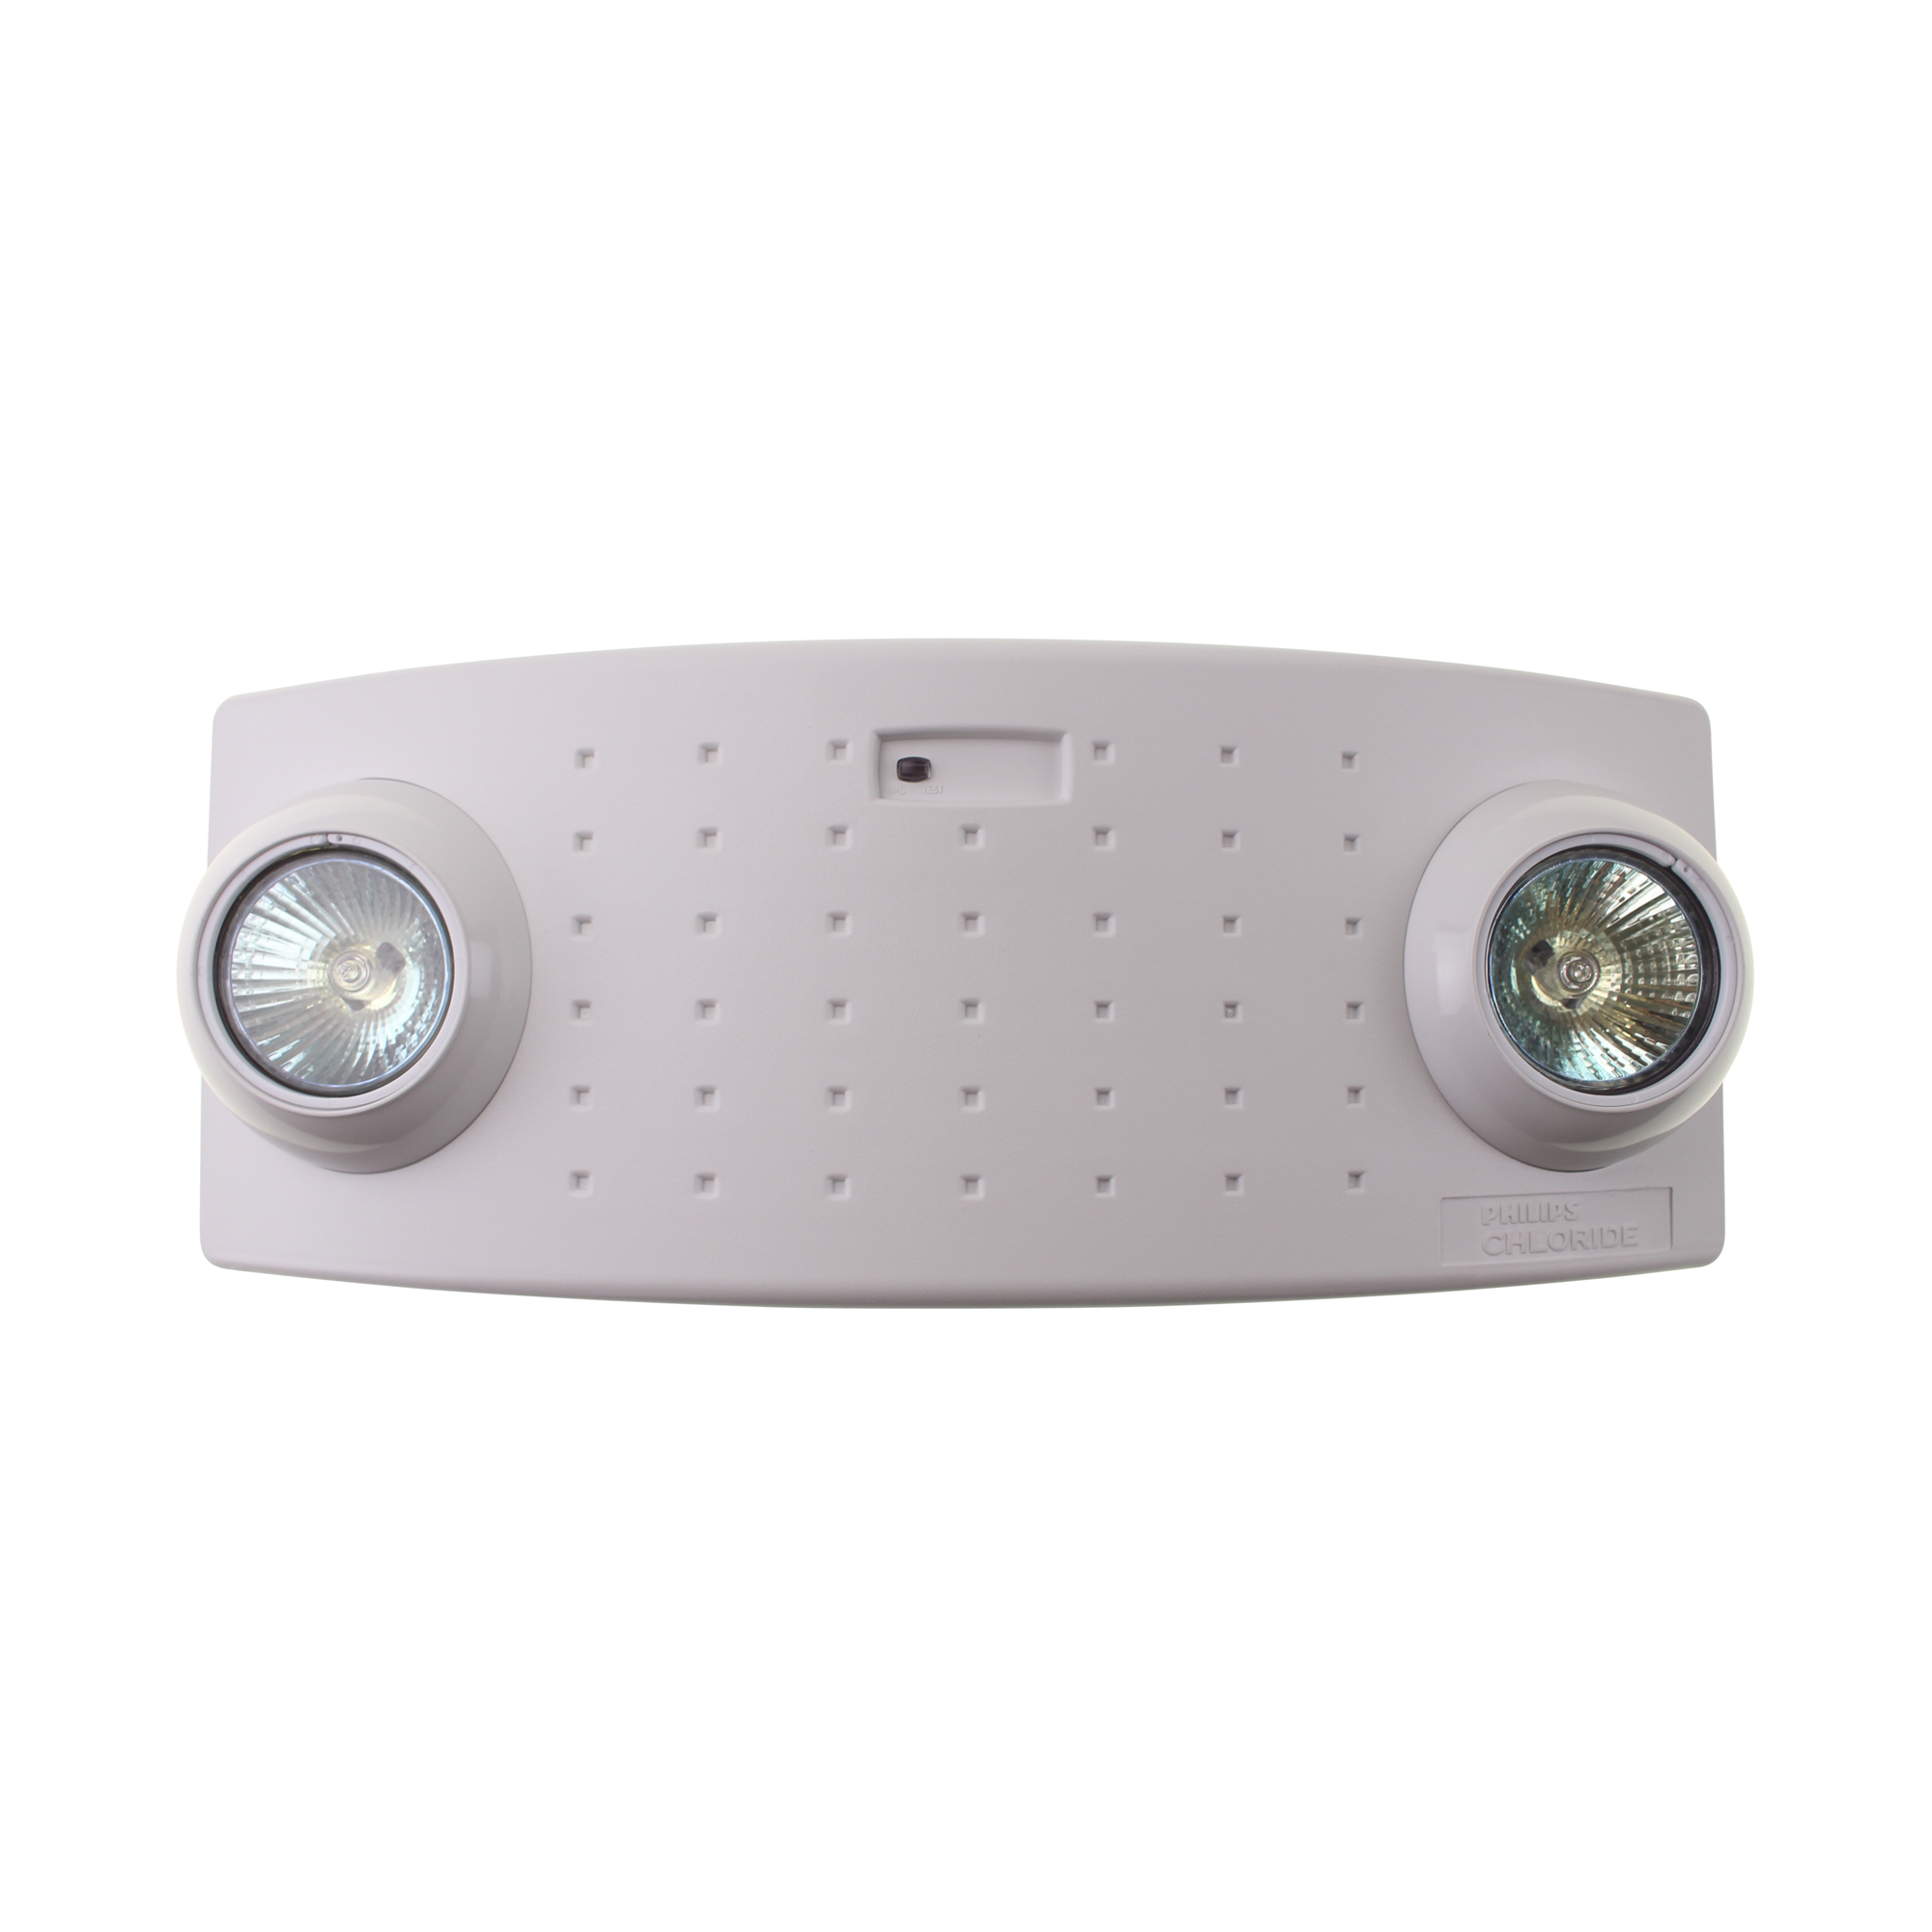 Philips chloride va6 emergency lighting bugeye 2 light mr16 la foto se est cargando philips va6 de iluminacion de emergencia montana chloride aloadofball Gallery